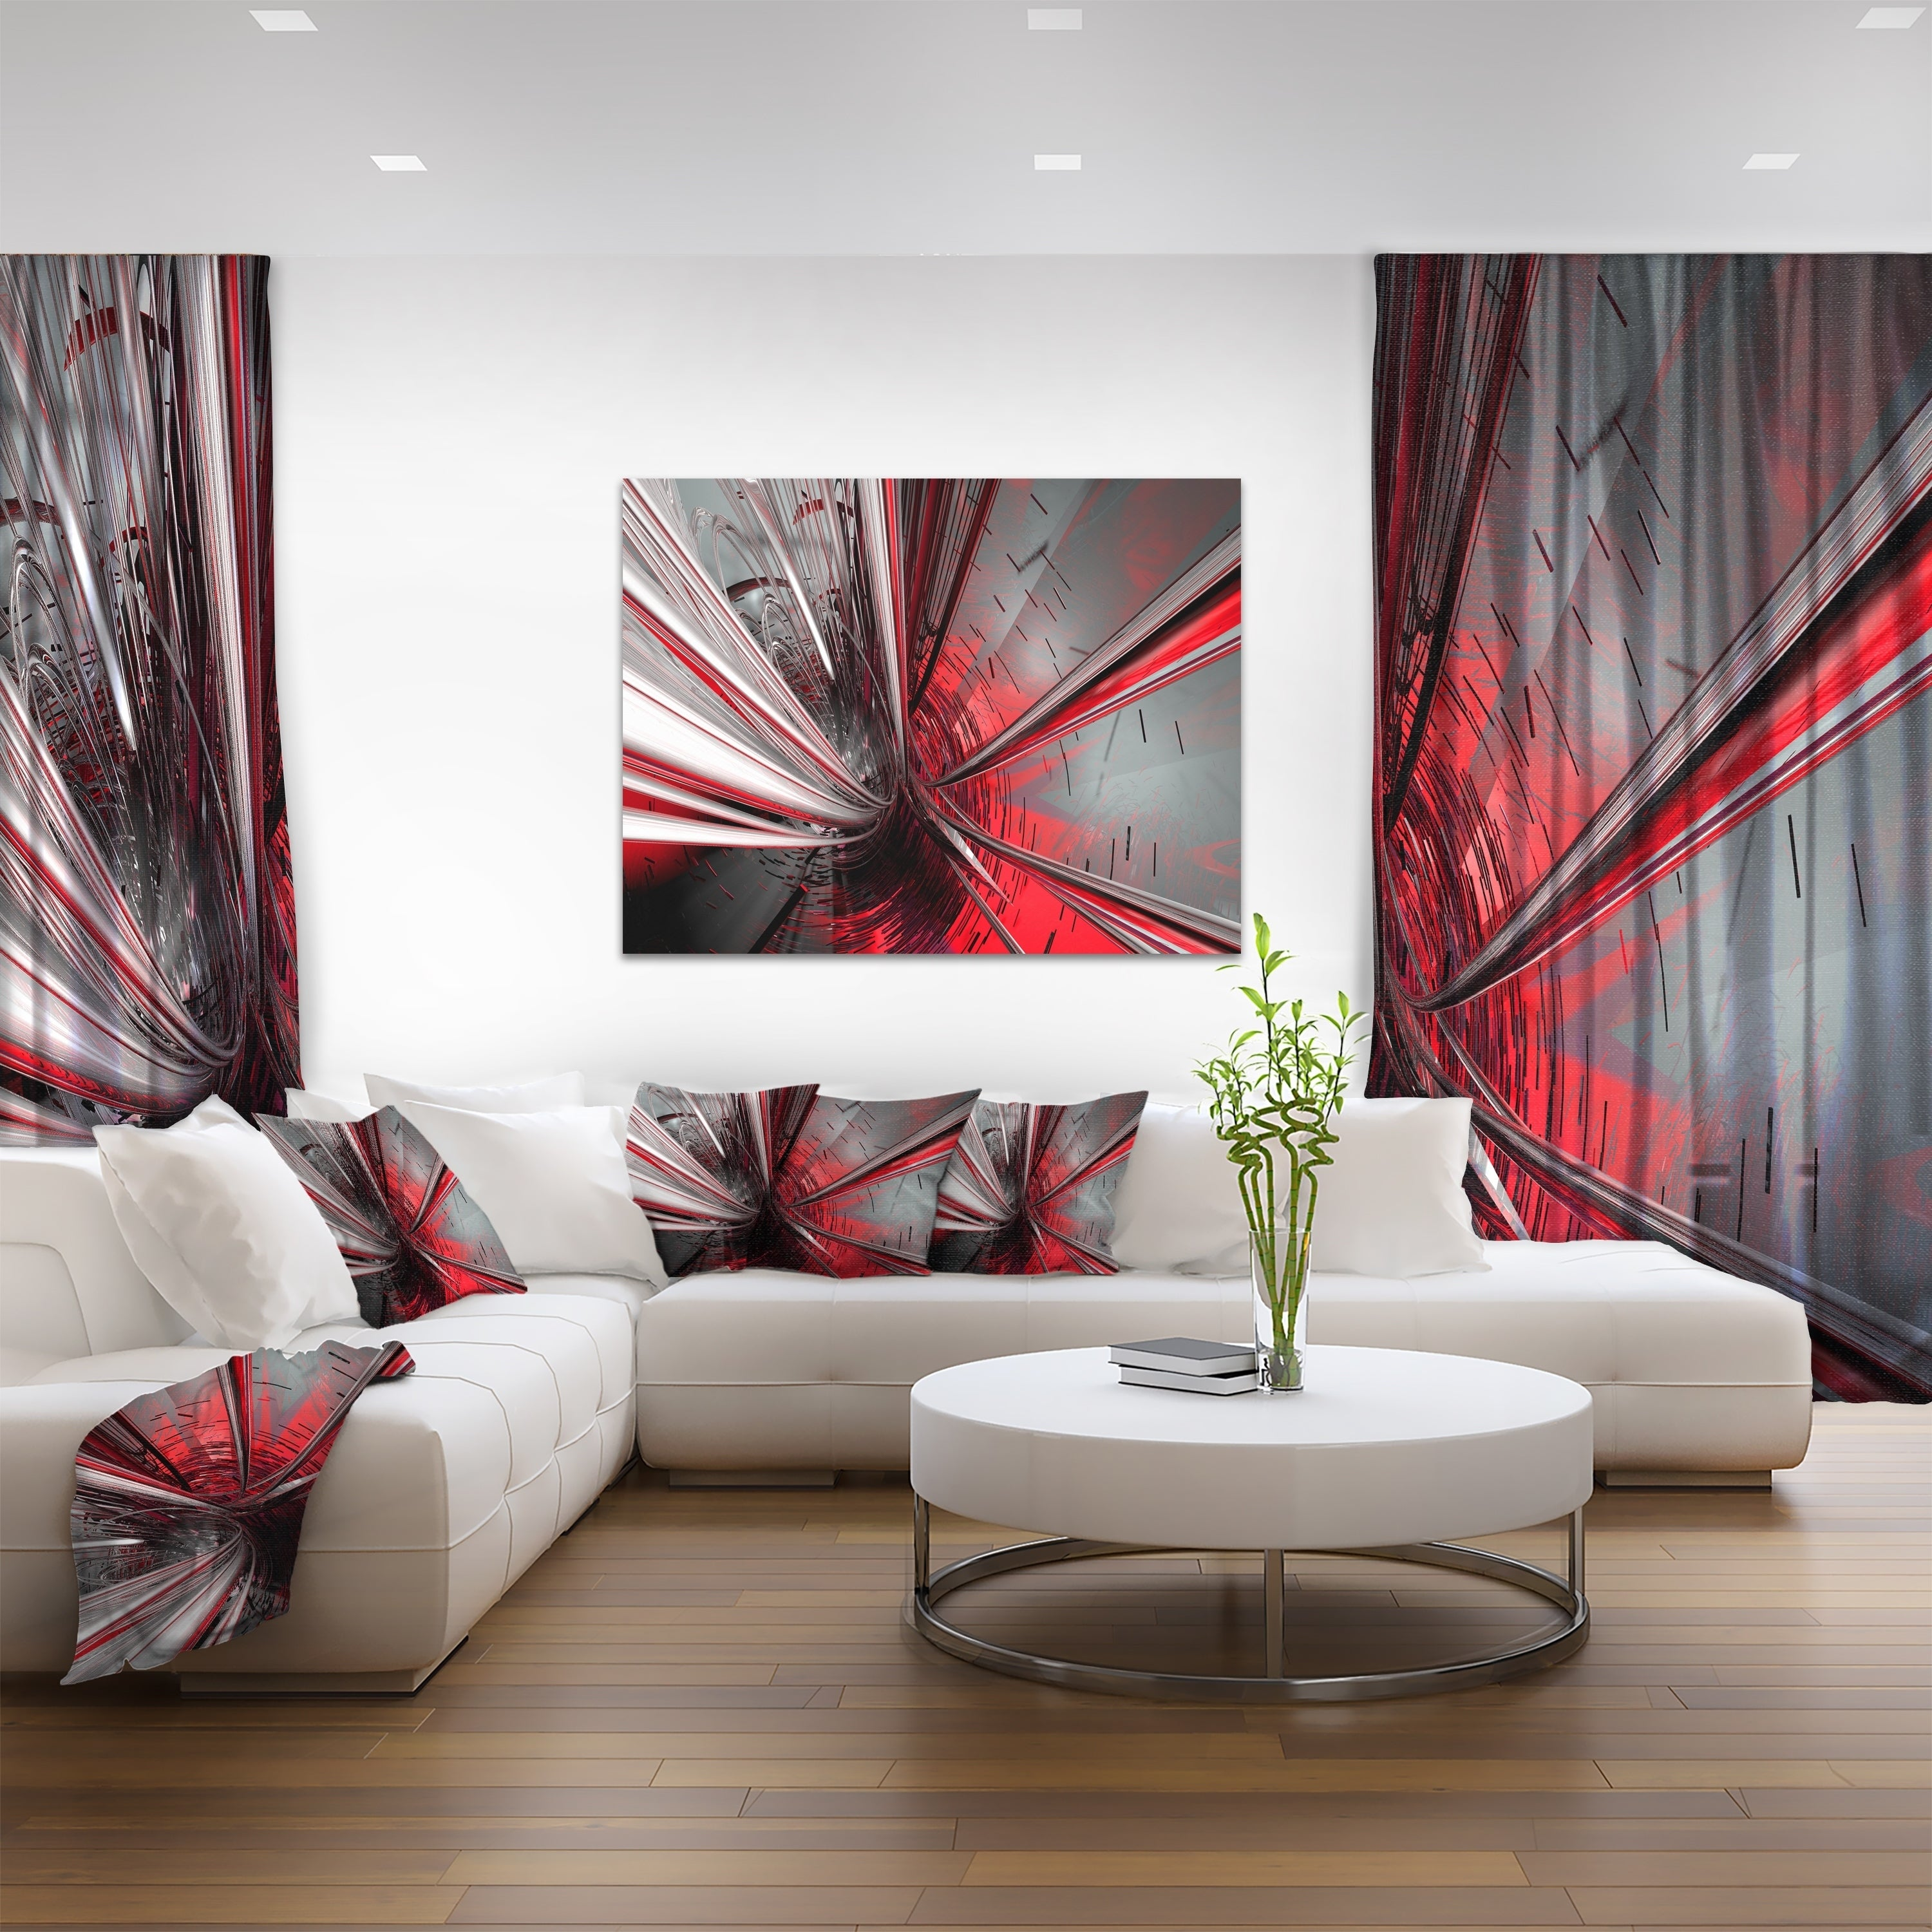 designing girls bedroom furniture fractal. design art fractal 3d deep into middle abstract canvas print - free shipping today overstock 18977418 designing girls bedroom furniture l